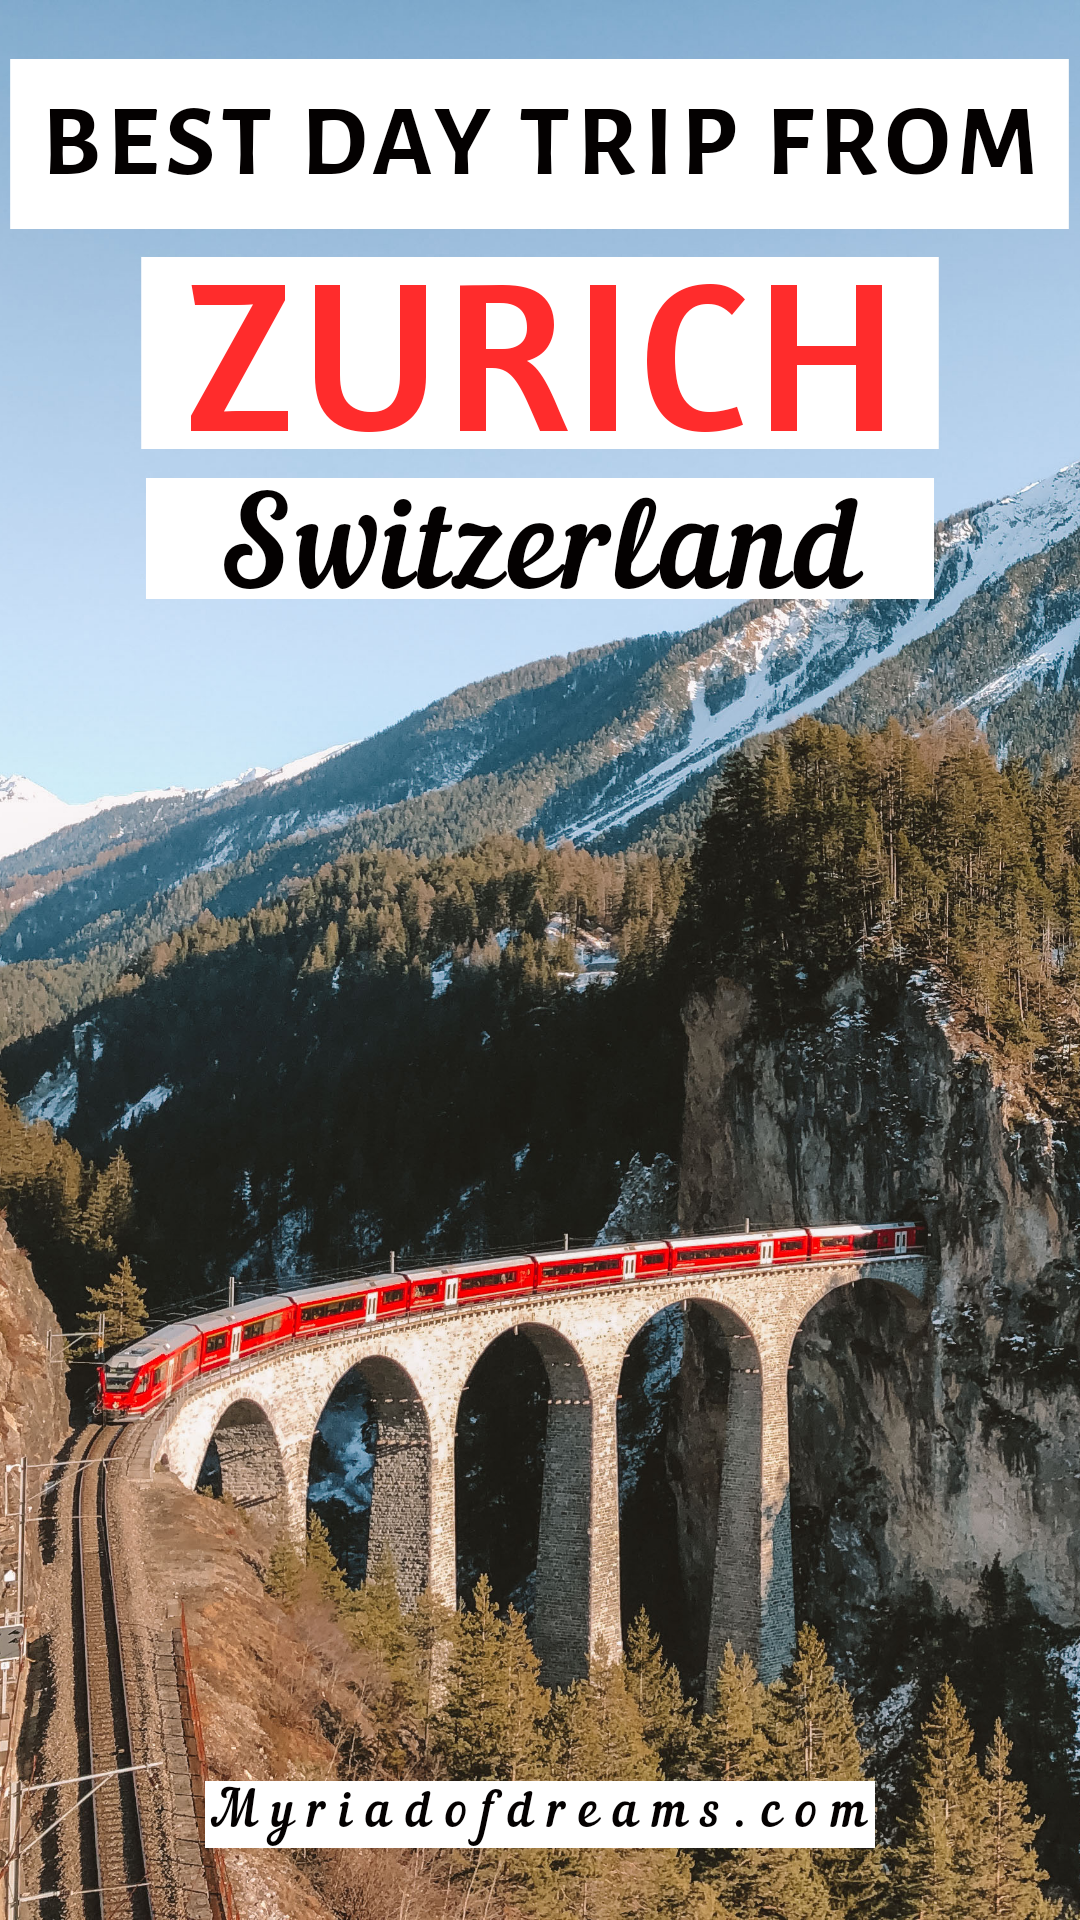 Zurich day trip | best one day trip from Zurich | Zurich day trip in winter |Zurich Switzerland day trip | Zurich travel in snow | Things to do in Zurich | Day trip itinerary from Zurich | Best landscape around Zurich | Zurich nature | Sledging in Switzerland | Landwasser viaduct | Filisur Switzerland | Bravuogn Switzerland | Bergün Switzerland | Preda Switzerland #zurichtravel #zurich #switzerland #daytrip